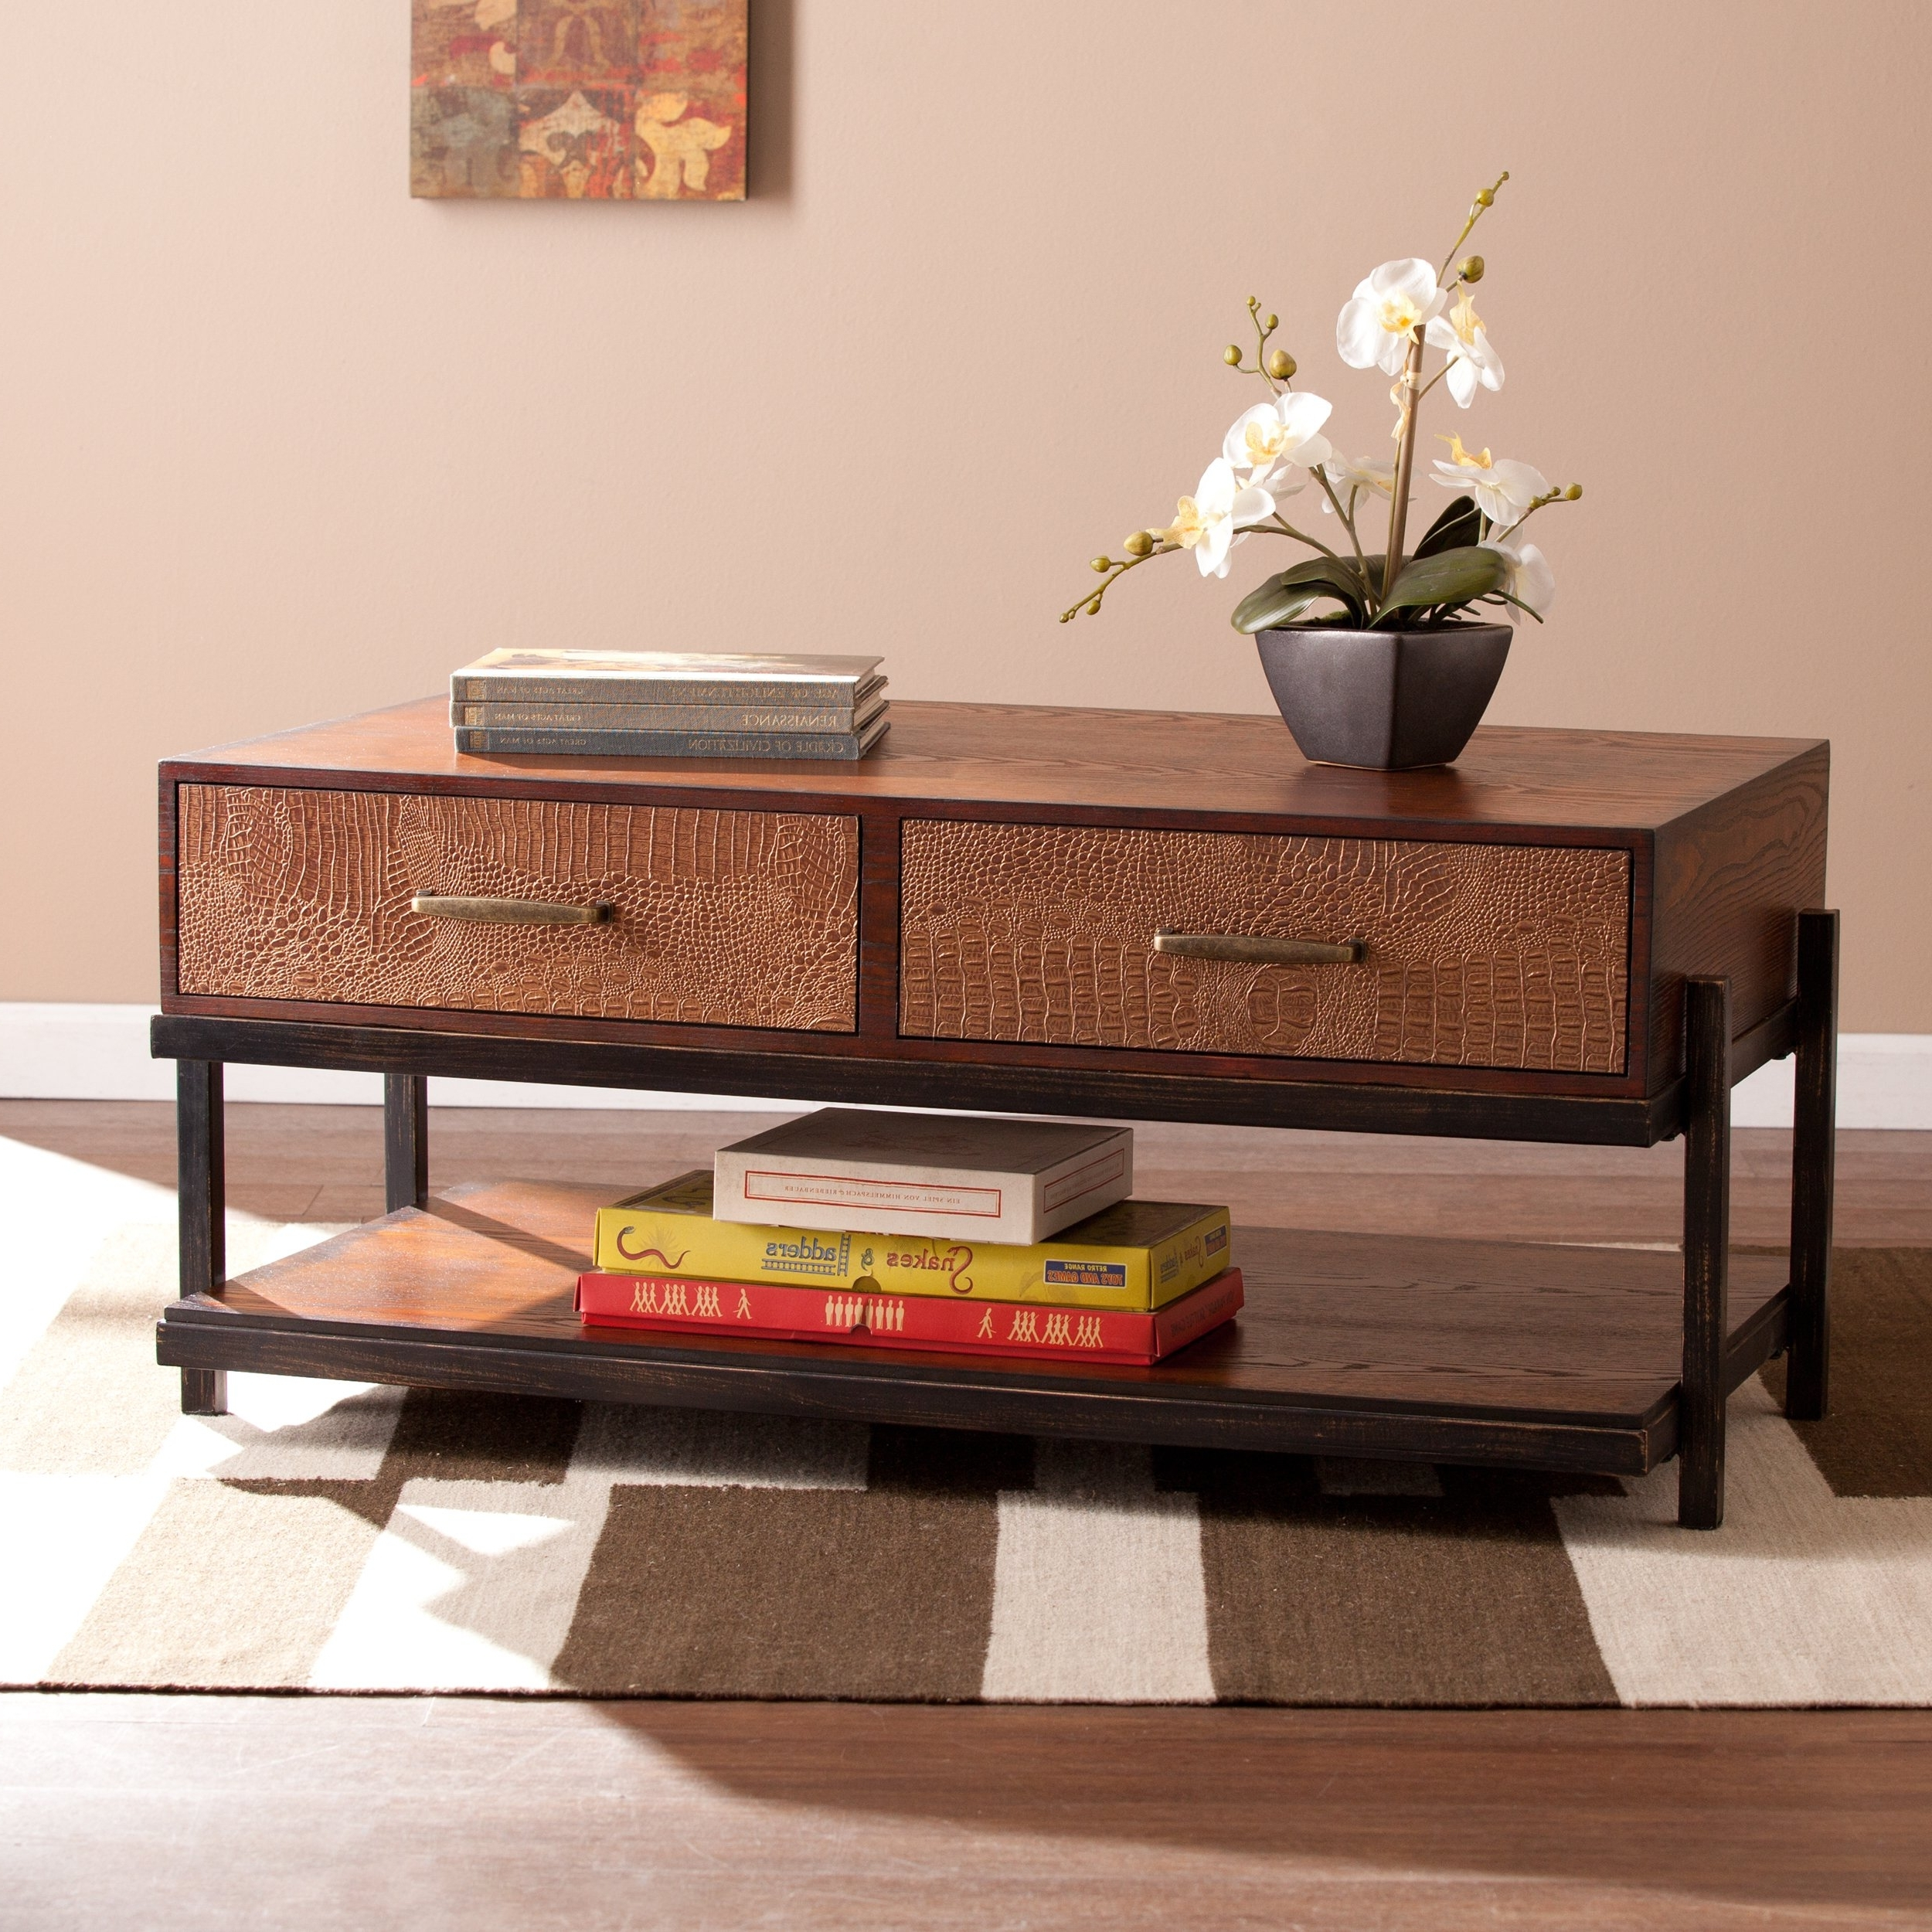 Most Recently Released Palmer Storage Cocktail Tables With Regard To Shop Harper Blvd Palmer Cocktail/ Coffee Table – Free Shipping Today (View 4 of 20)